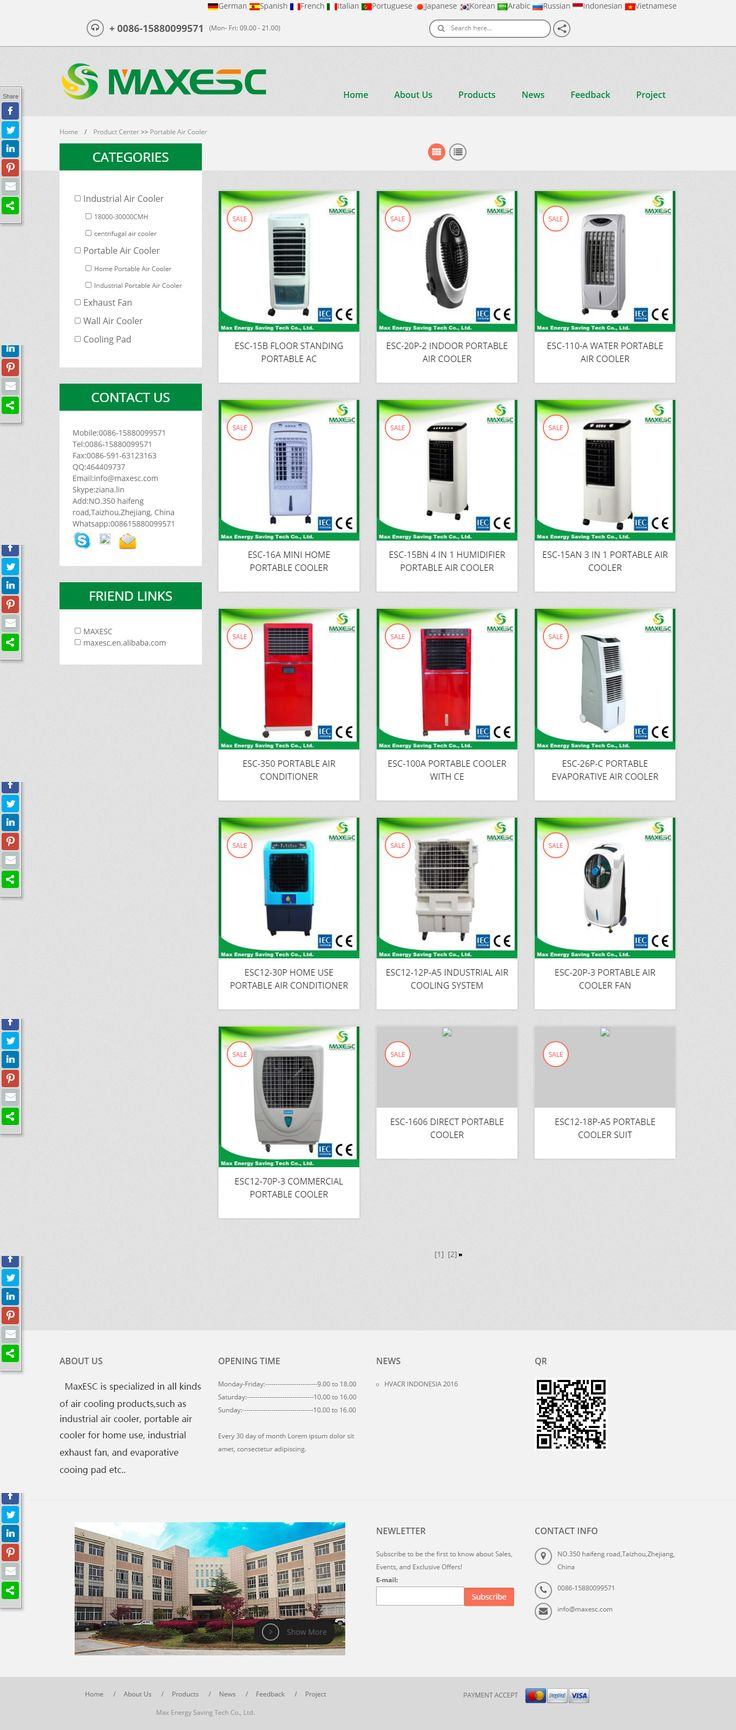 Max Energy Saving Tech Co., Ltd. is a leading supplier of portable air cooler and also exporting room air cooler, evaporative air cooler, big outdoor evaporative portable air cooler and many more. Read More: http://www.maxesc.com/Portable-Air-Cooler-3.html